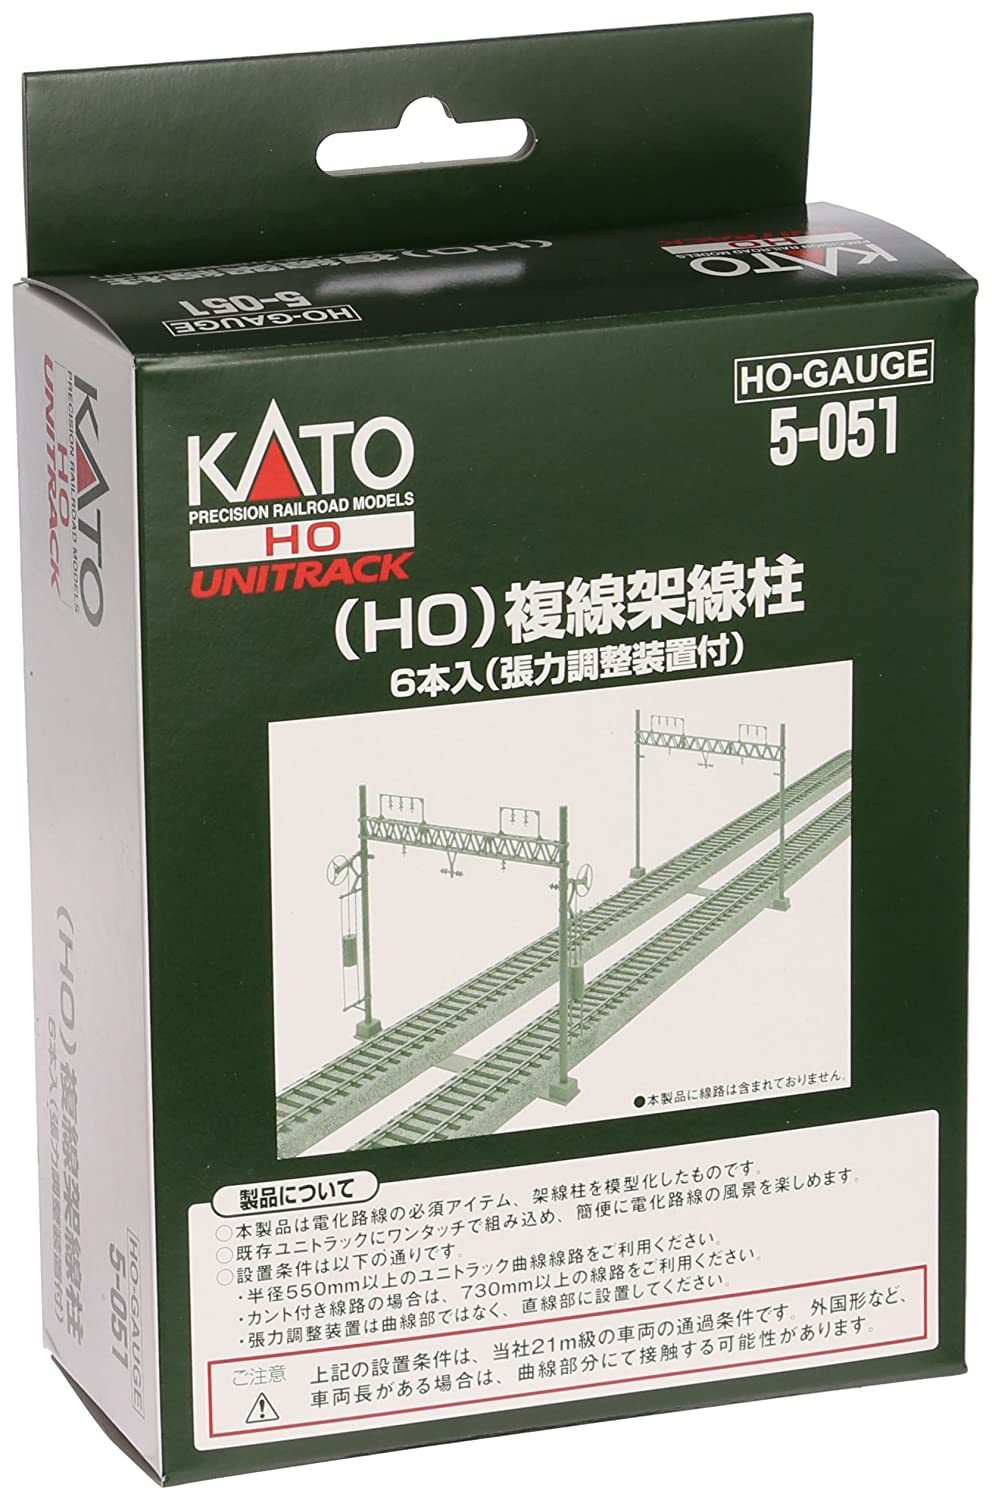 (6 pieces) (HO) double track overhead line pole HO gauge 5-051 (japan import) Kato